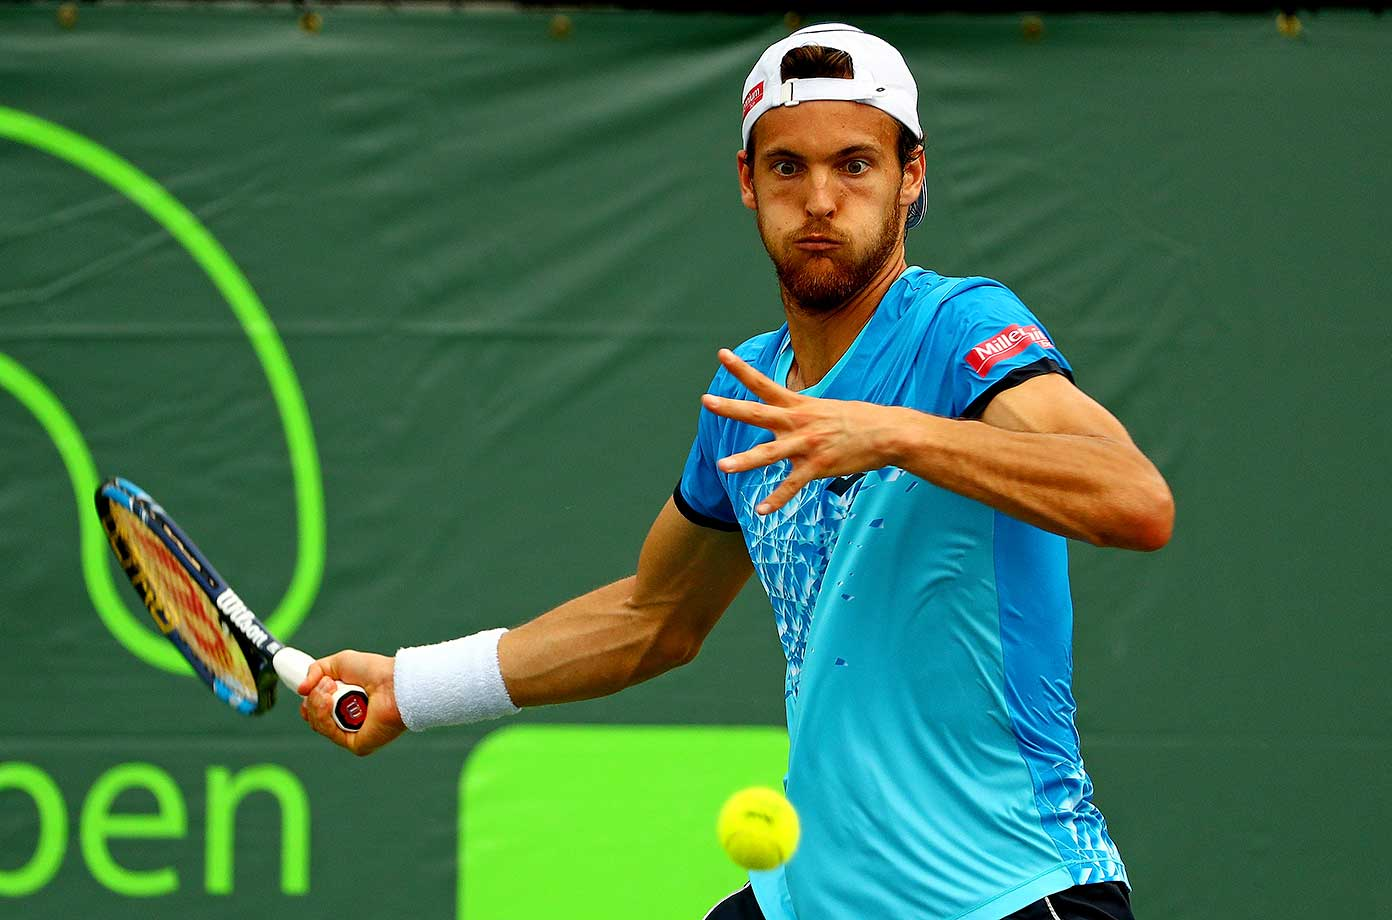 Joao Sousa of Portugal plays a match during Day 5 of the Miami Open in Key Biscayne, Fla.